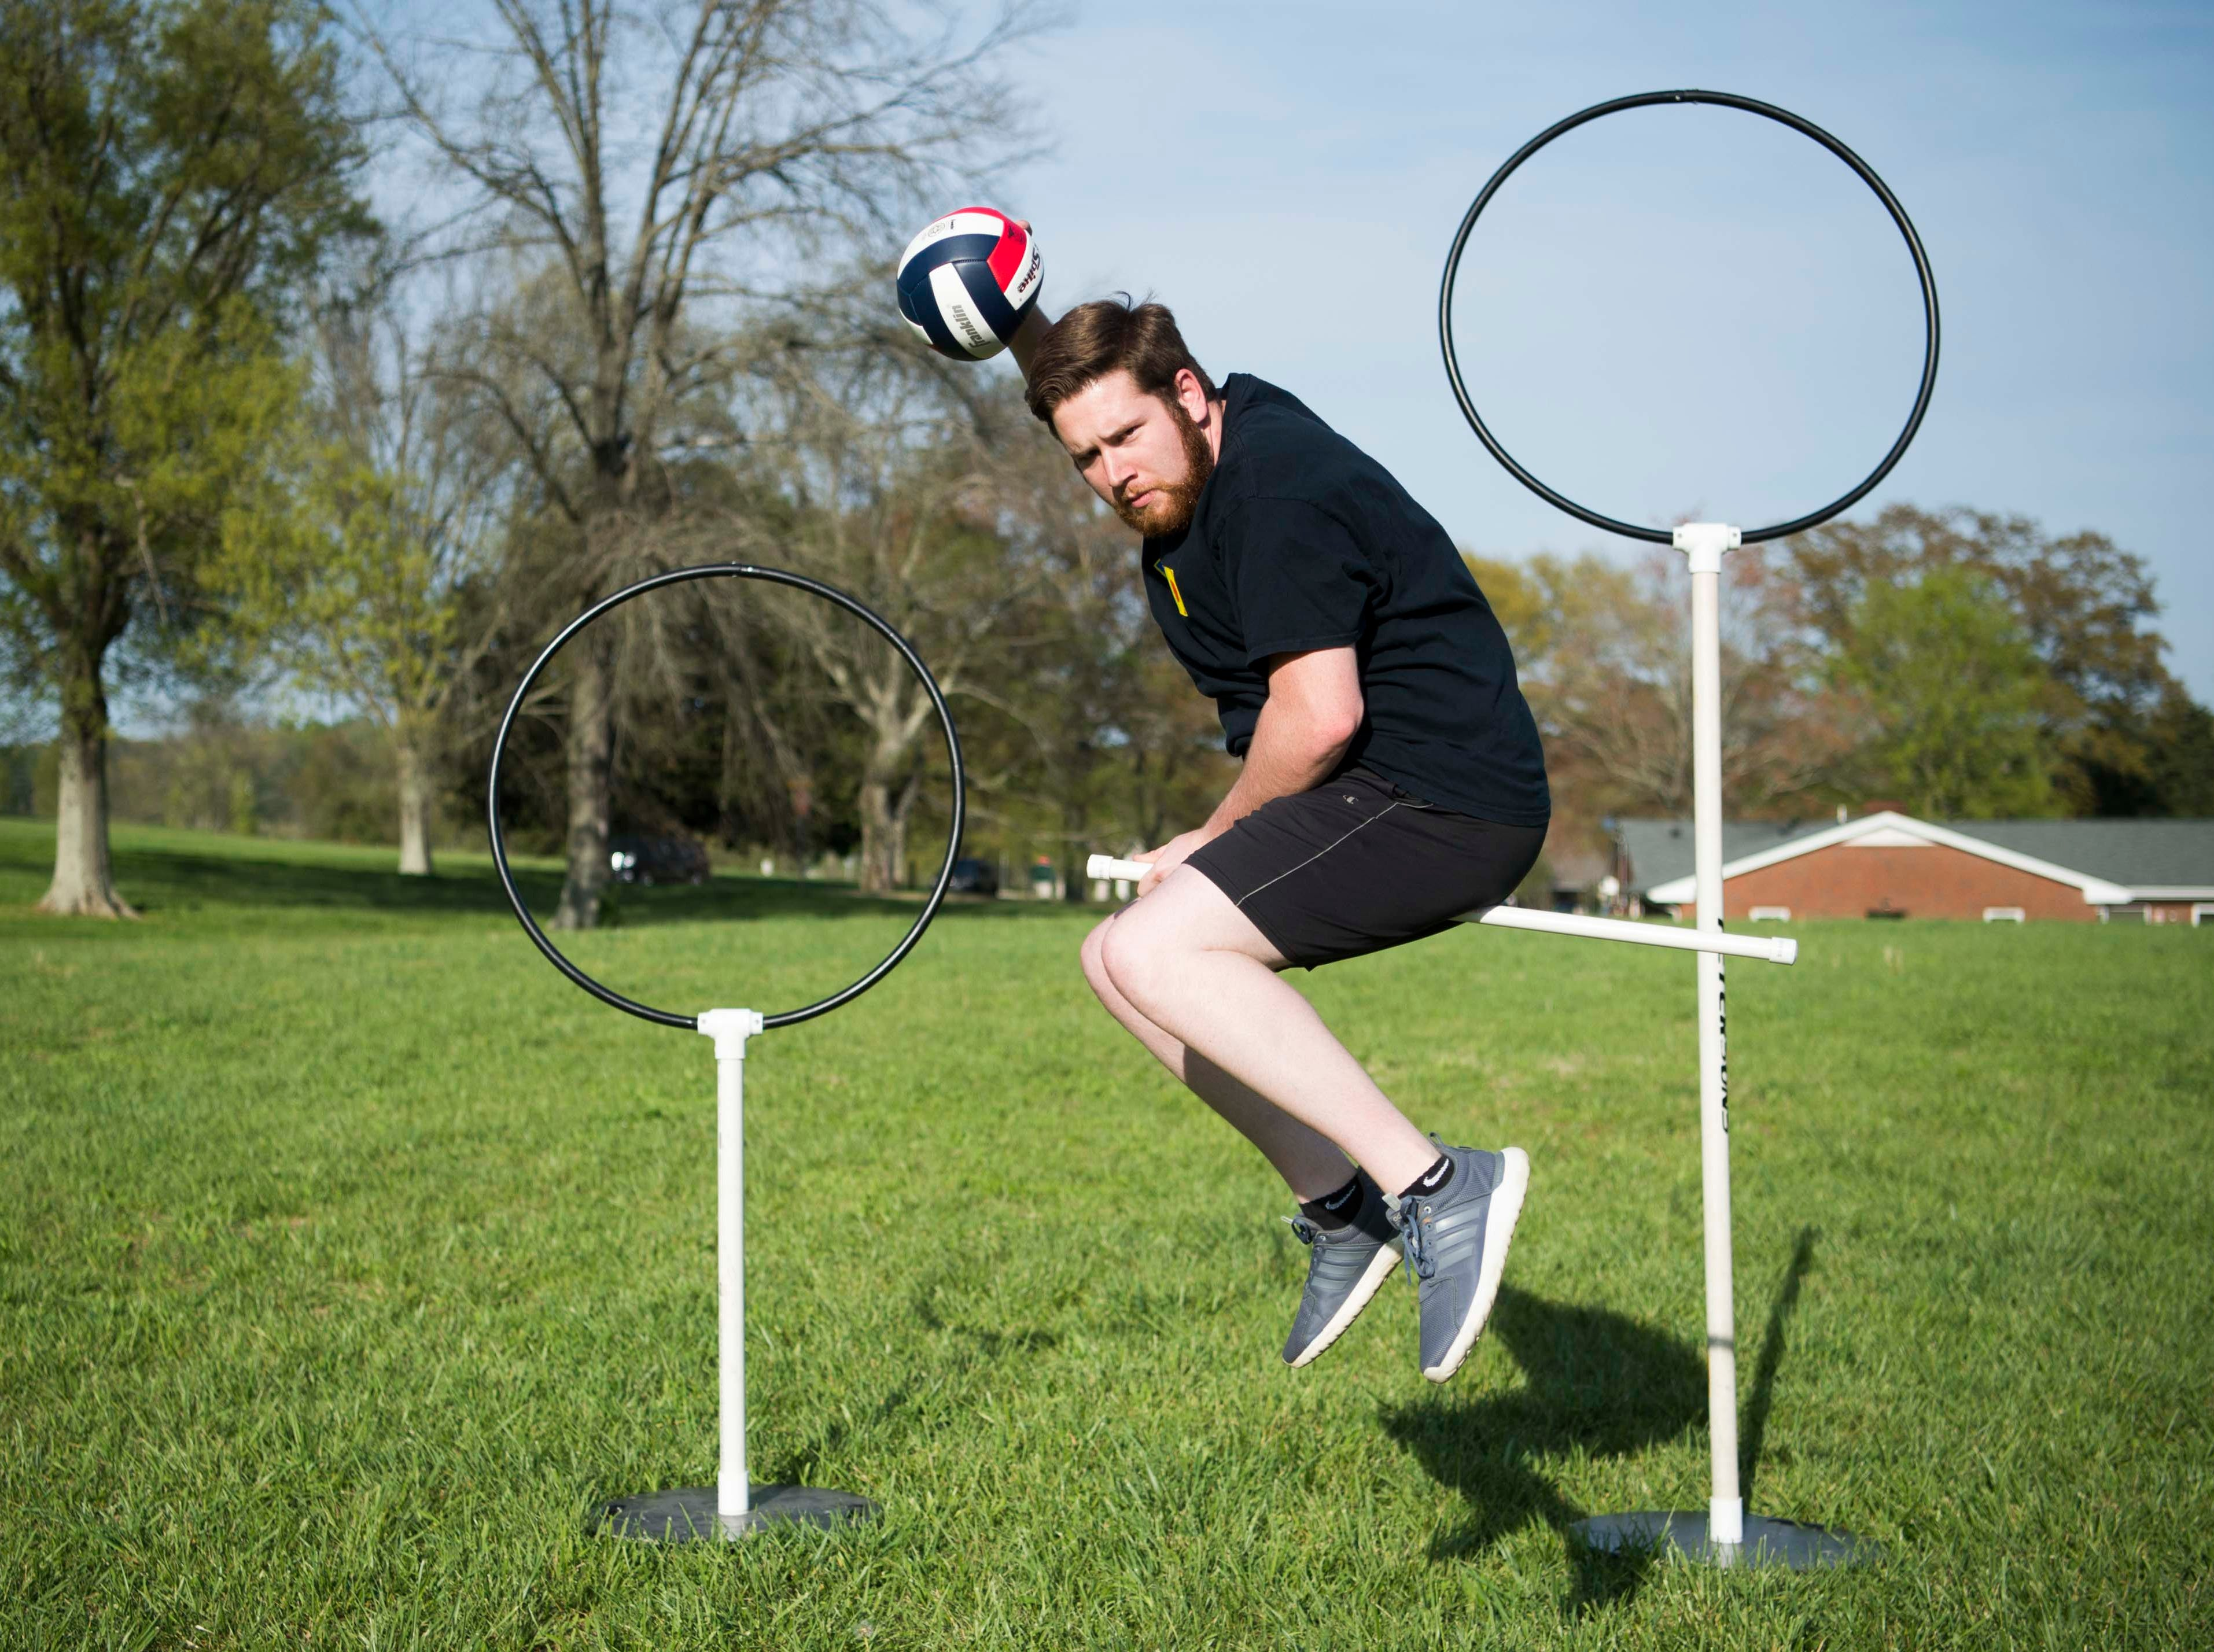 News Sentinel reporter Ryan Willusz poses for a photo on his broom before Knoxville Summer Quidditch League practice at Lakeshore Park in West Knoxville  Thursday, April 11, 2019.